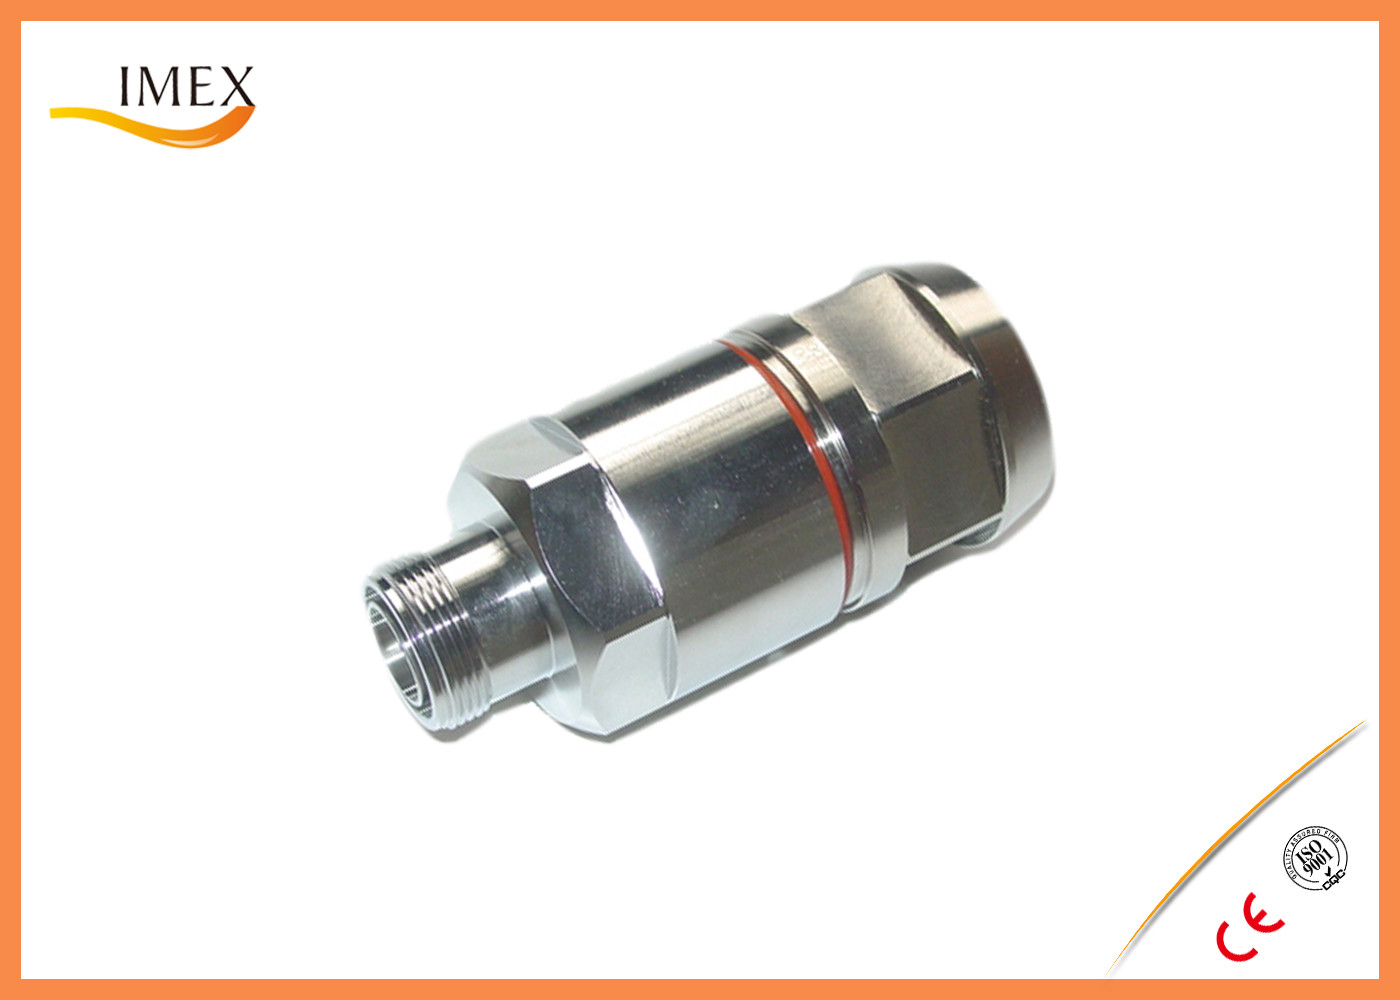 """DIN Female straight connector for 1-1/4"""" RF Coaxial foamcable feeder 4.3-10 coaxial connector 7/8"""" RF feeder cable"""